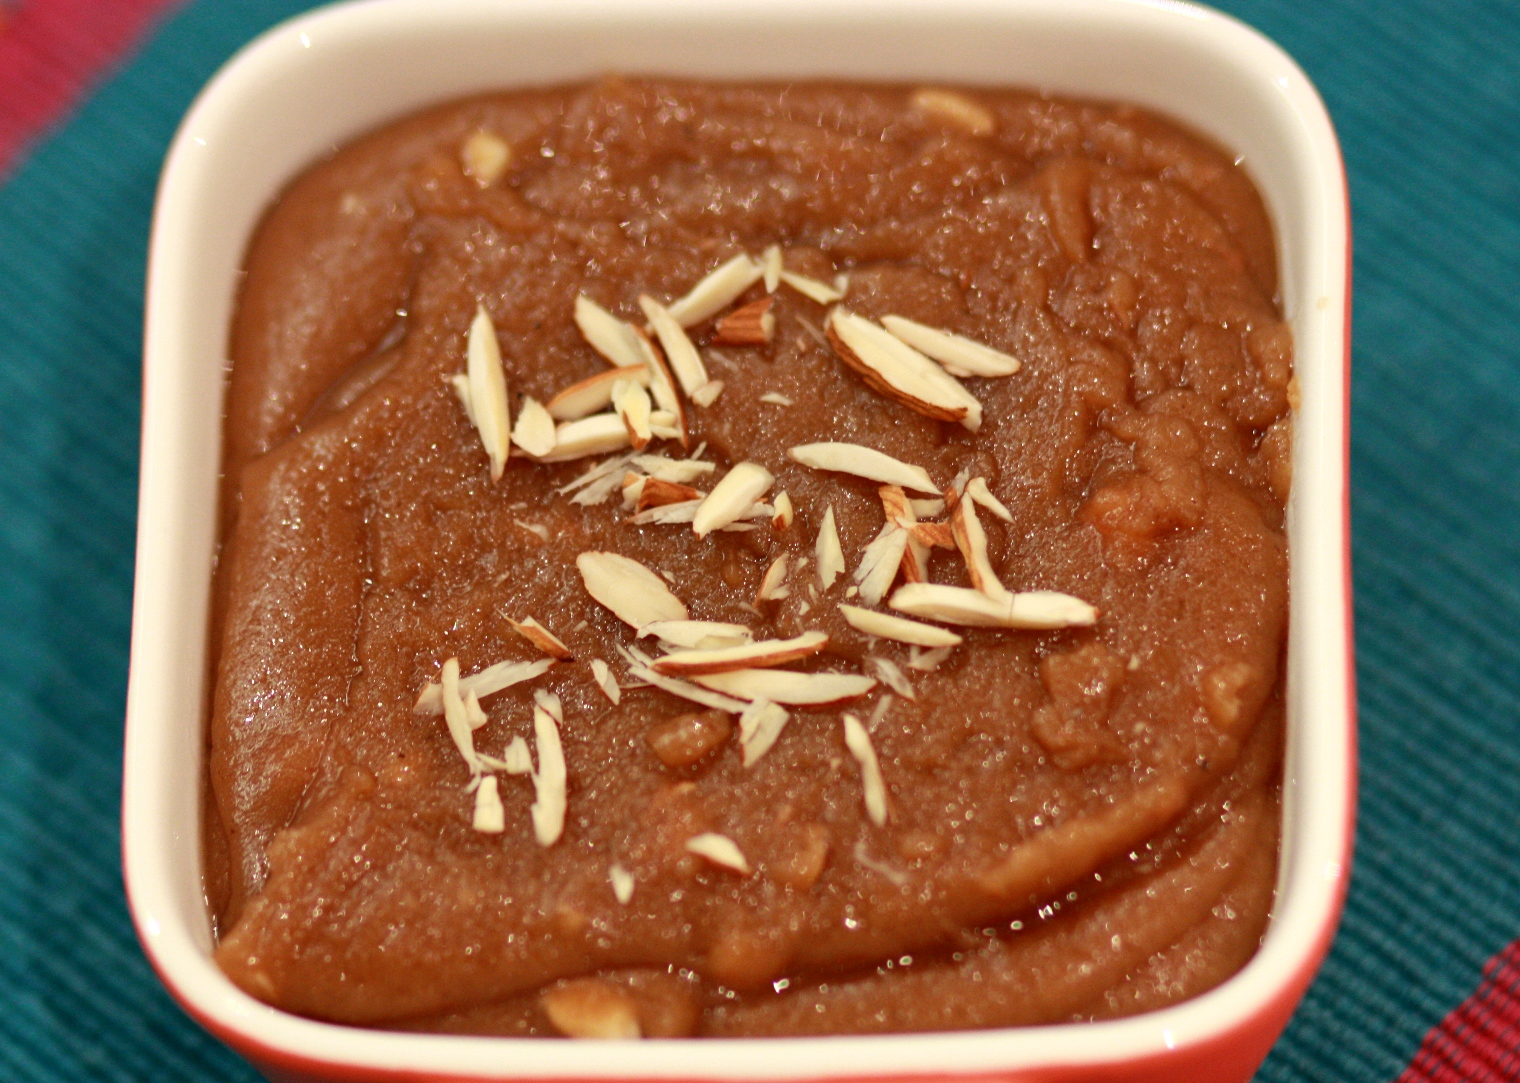 Aate ka Halwa (Wheat flour Pudding)